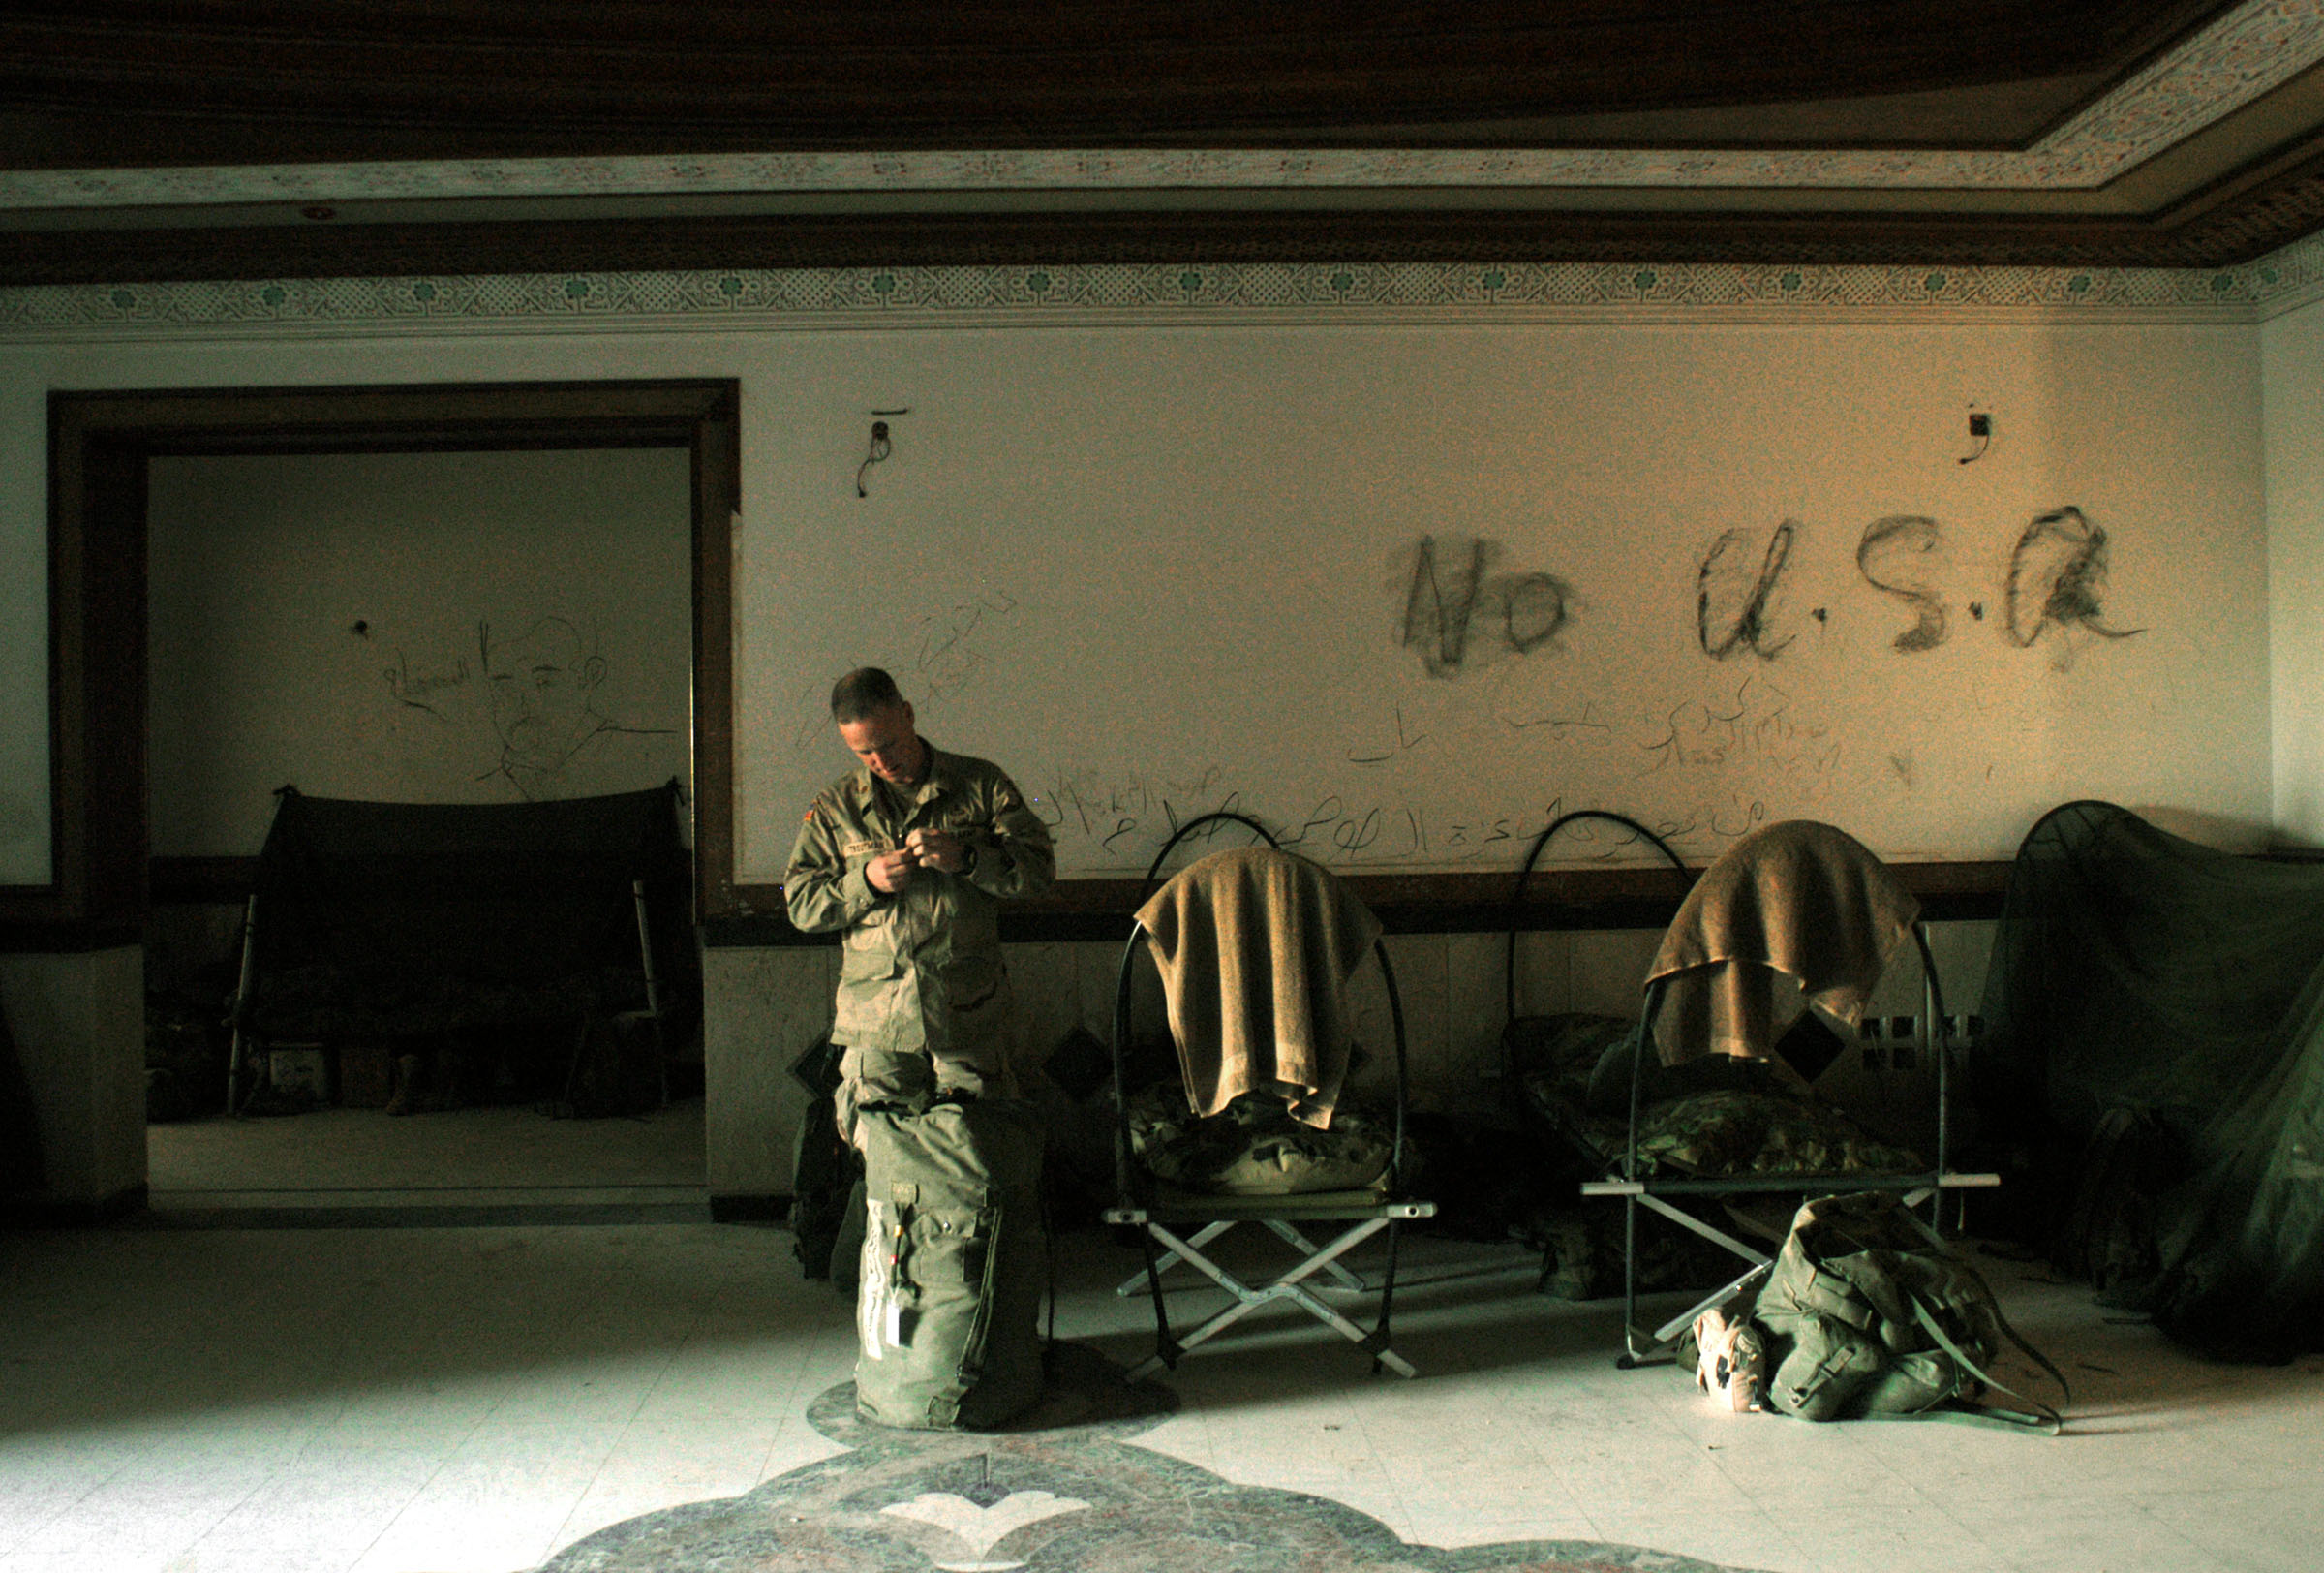 A soldier with the United States 101st Airbourne Division stands in front of Anti-American slogans drawn on the wall of the Division Main Headquarters in one of Saddam Hussain's former palaces in Mosel, Northern Iraq, May 1, 2003.  The palace was Hussain's Northernmost palace in Iraq, and was his VIP palace, and now runs the entire northwest region of Iraq for the 101st Airbourne.